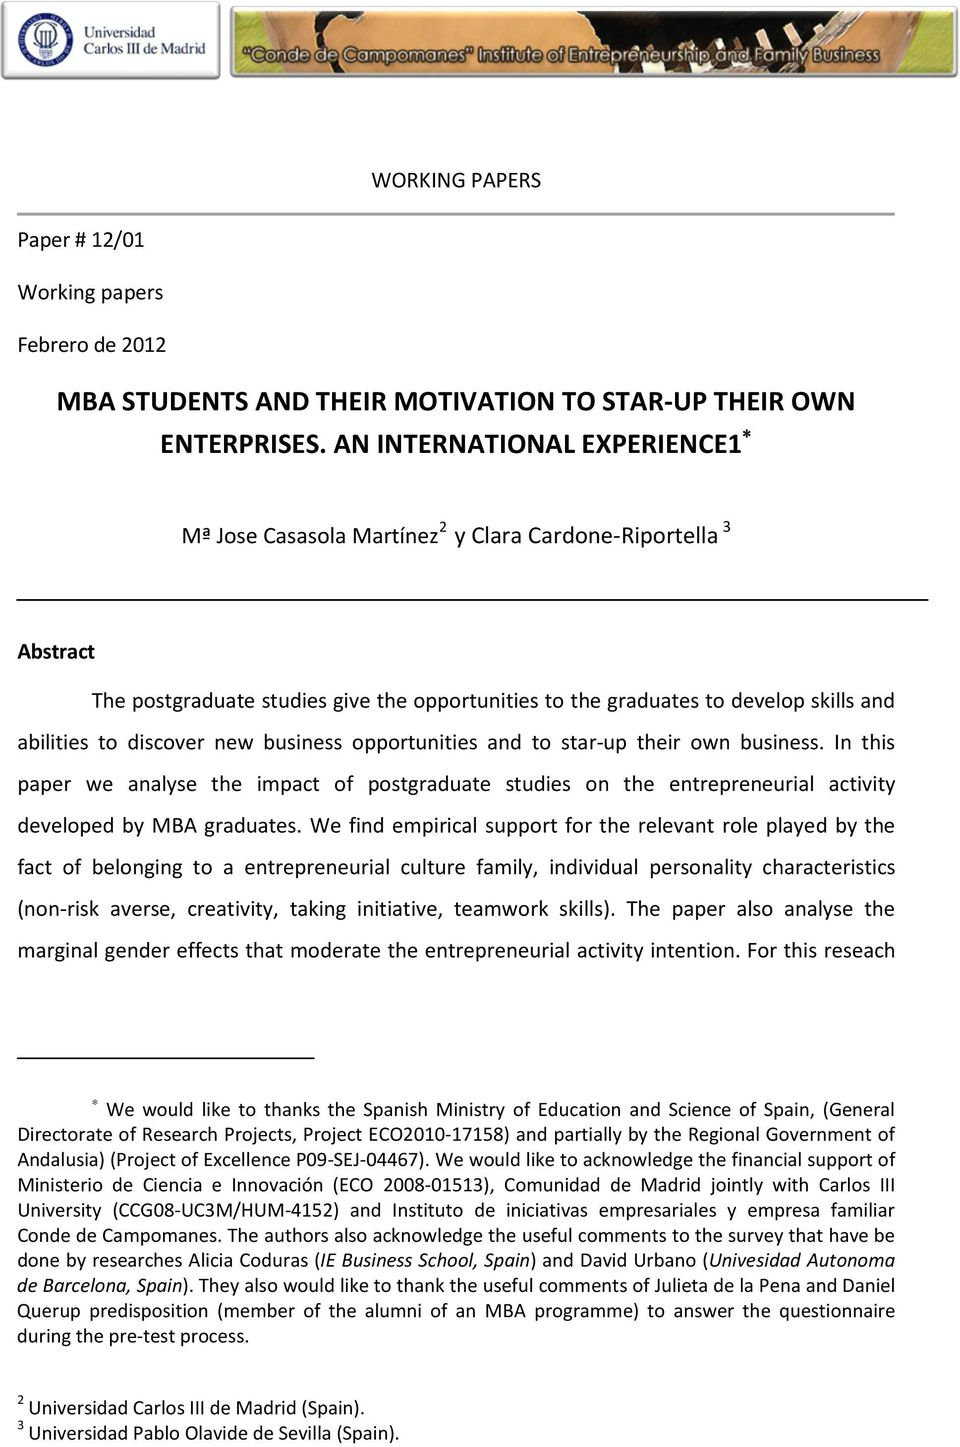 discover new business opportunities and to star-up their own business. In this paper we analyse the impact of postgraduate studies on the entrepreneurial activity developed by MBA graduates.